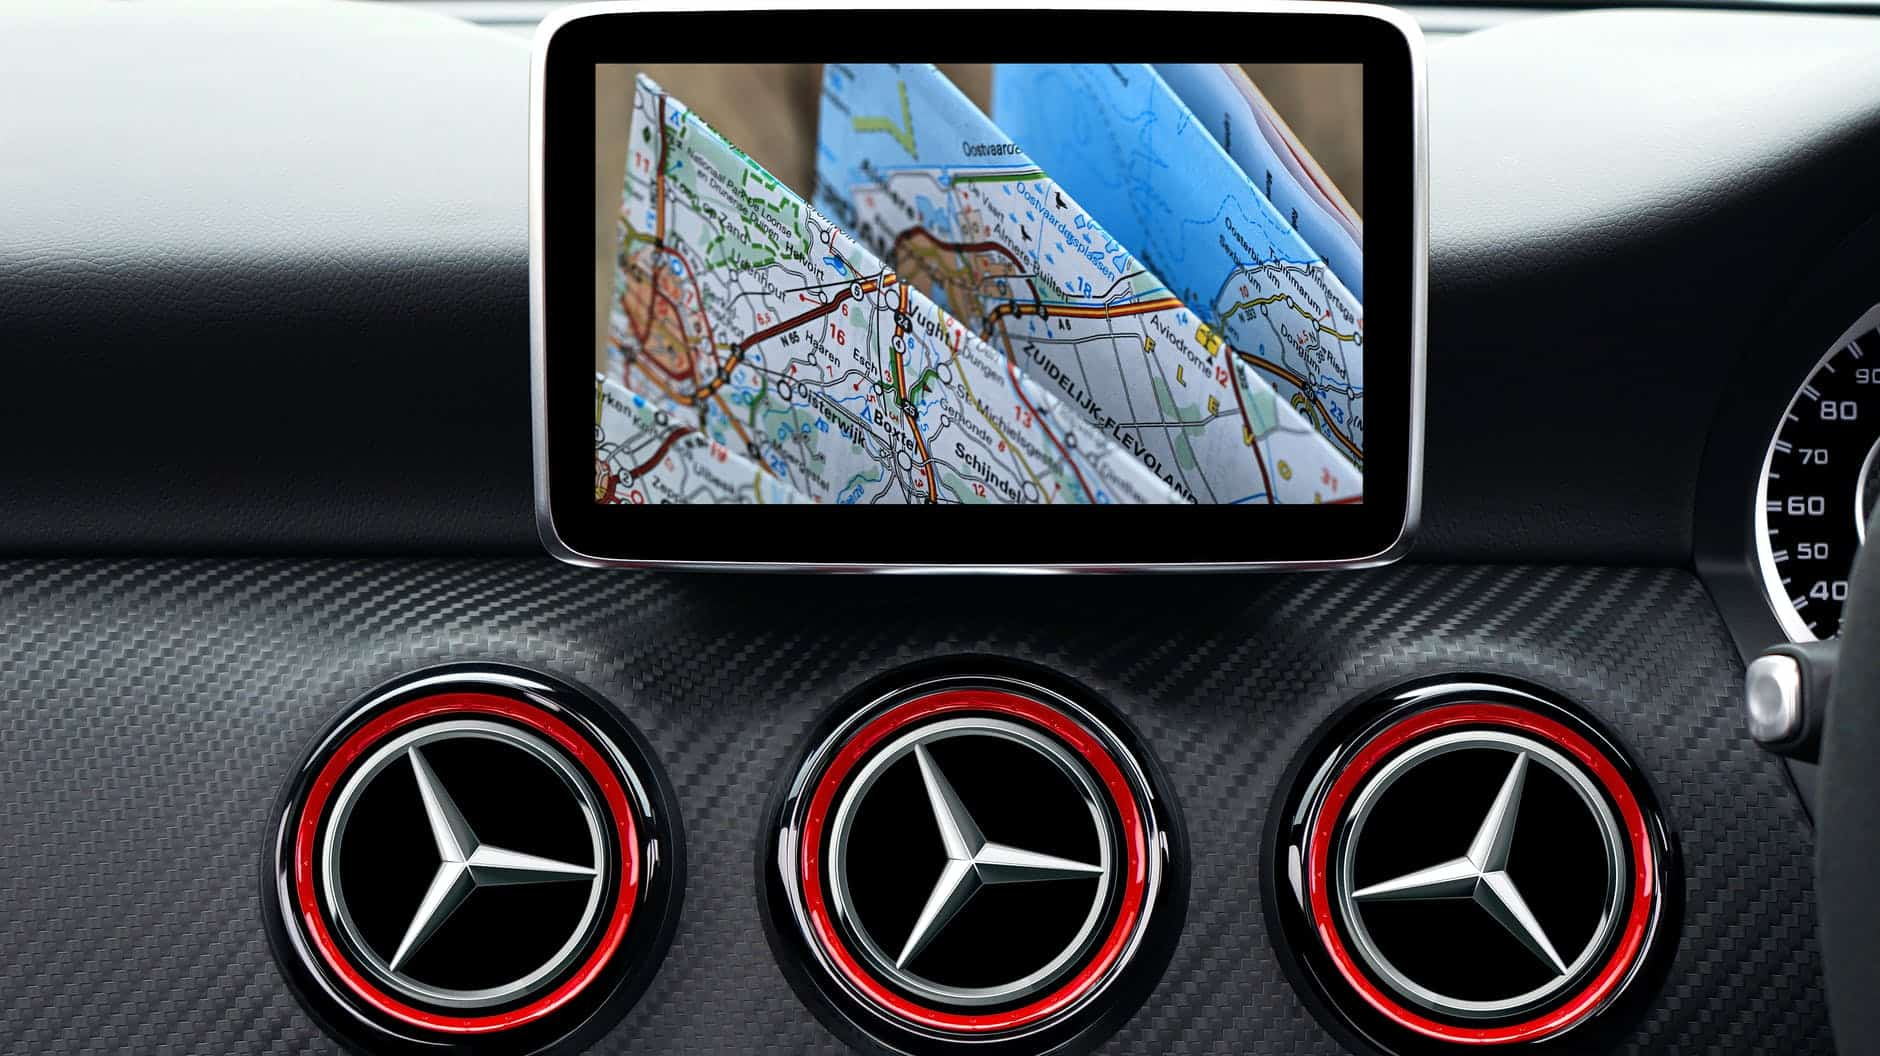 Gps device attached on dash board